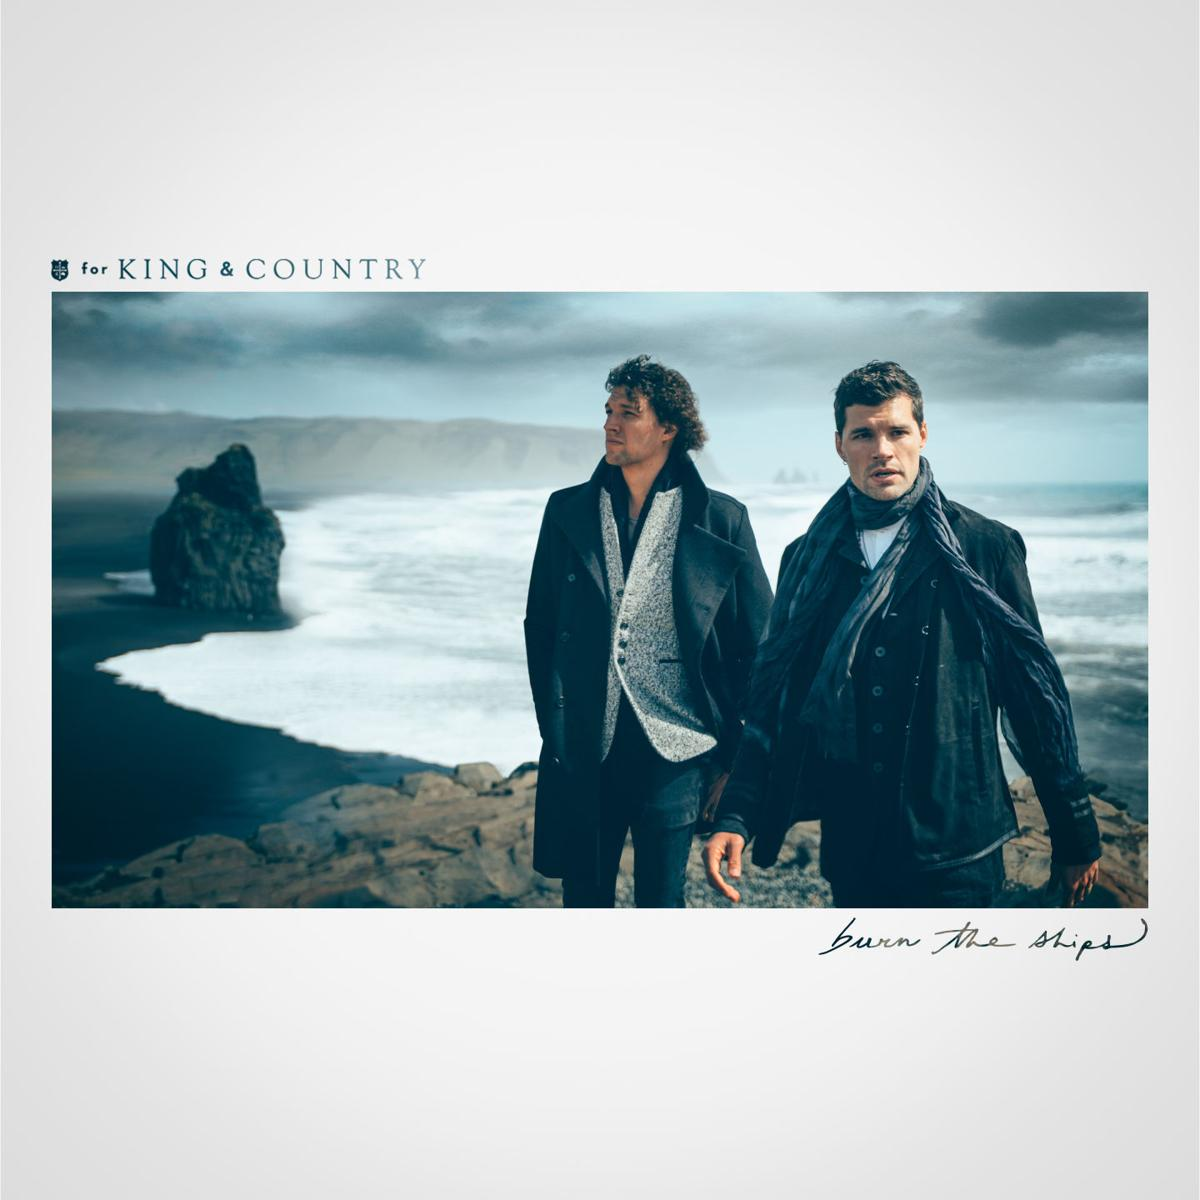 Ky State Fair concert 2019 -  for KING & COUNTRY.jpg